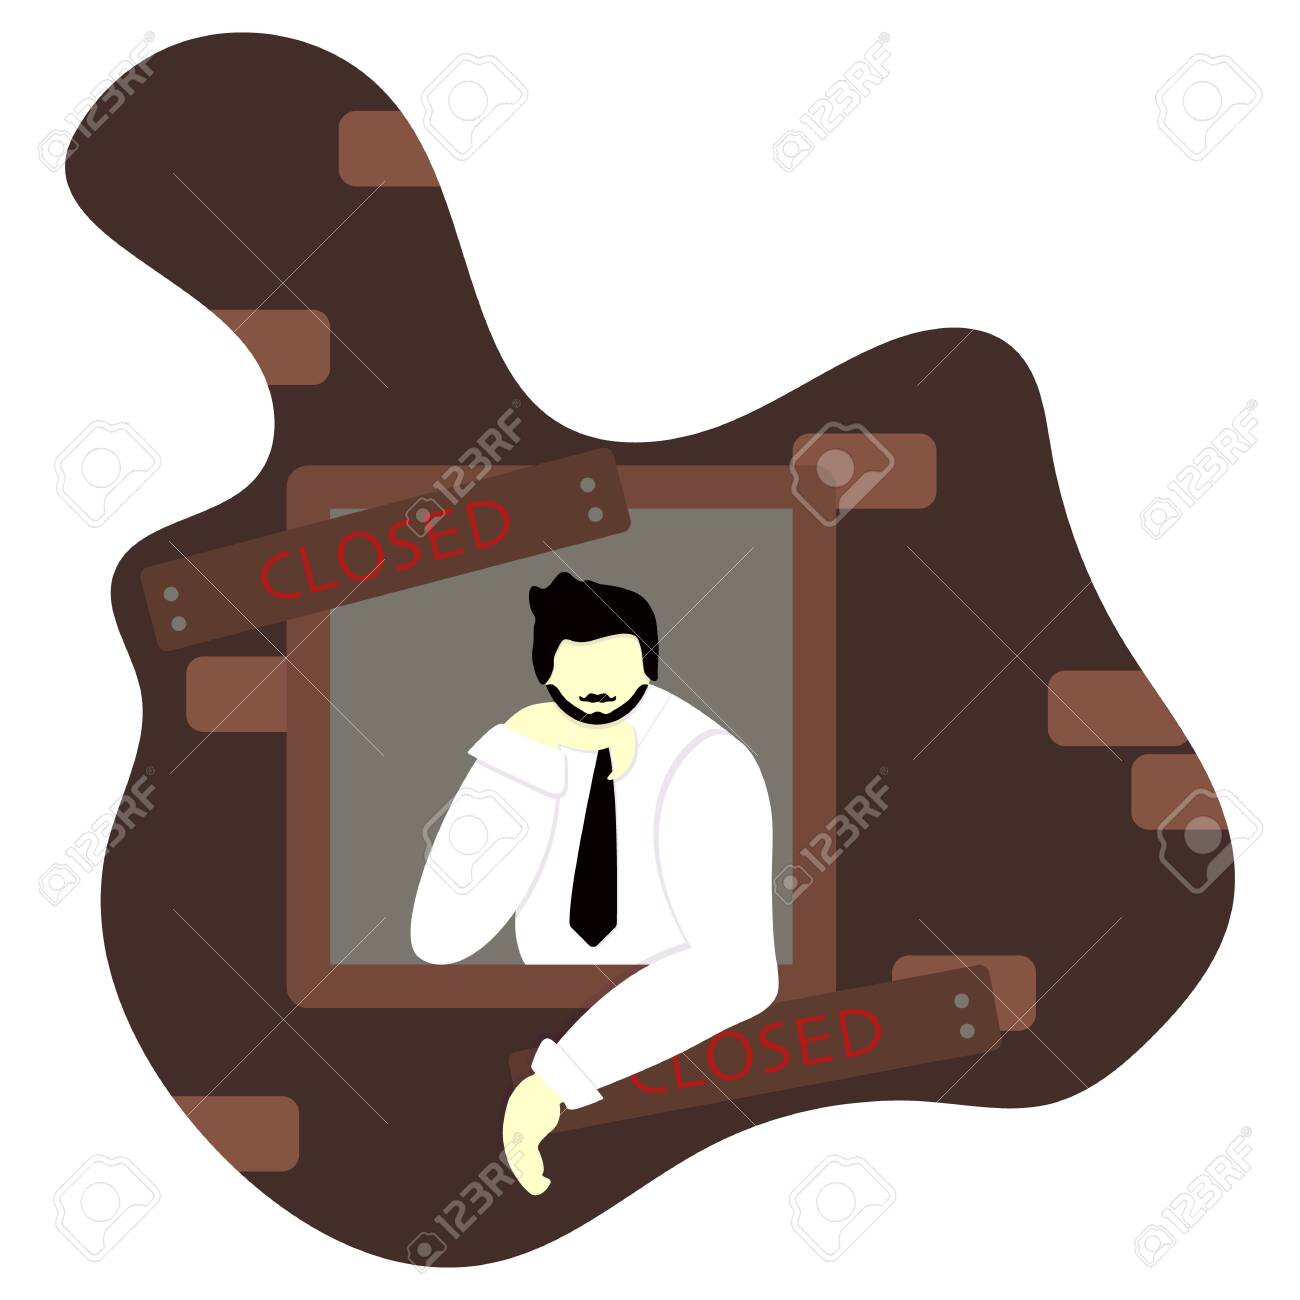 Bankrupt in window. Boarded up window with tablet closed. Bankruptcy and ruin business concept vector illustration. Sad businessman in tie went broke. Effect of coronavirus or COVID-19 outbreak 2020. - 146261918